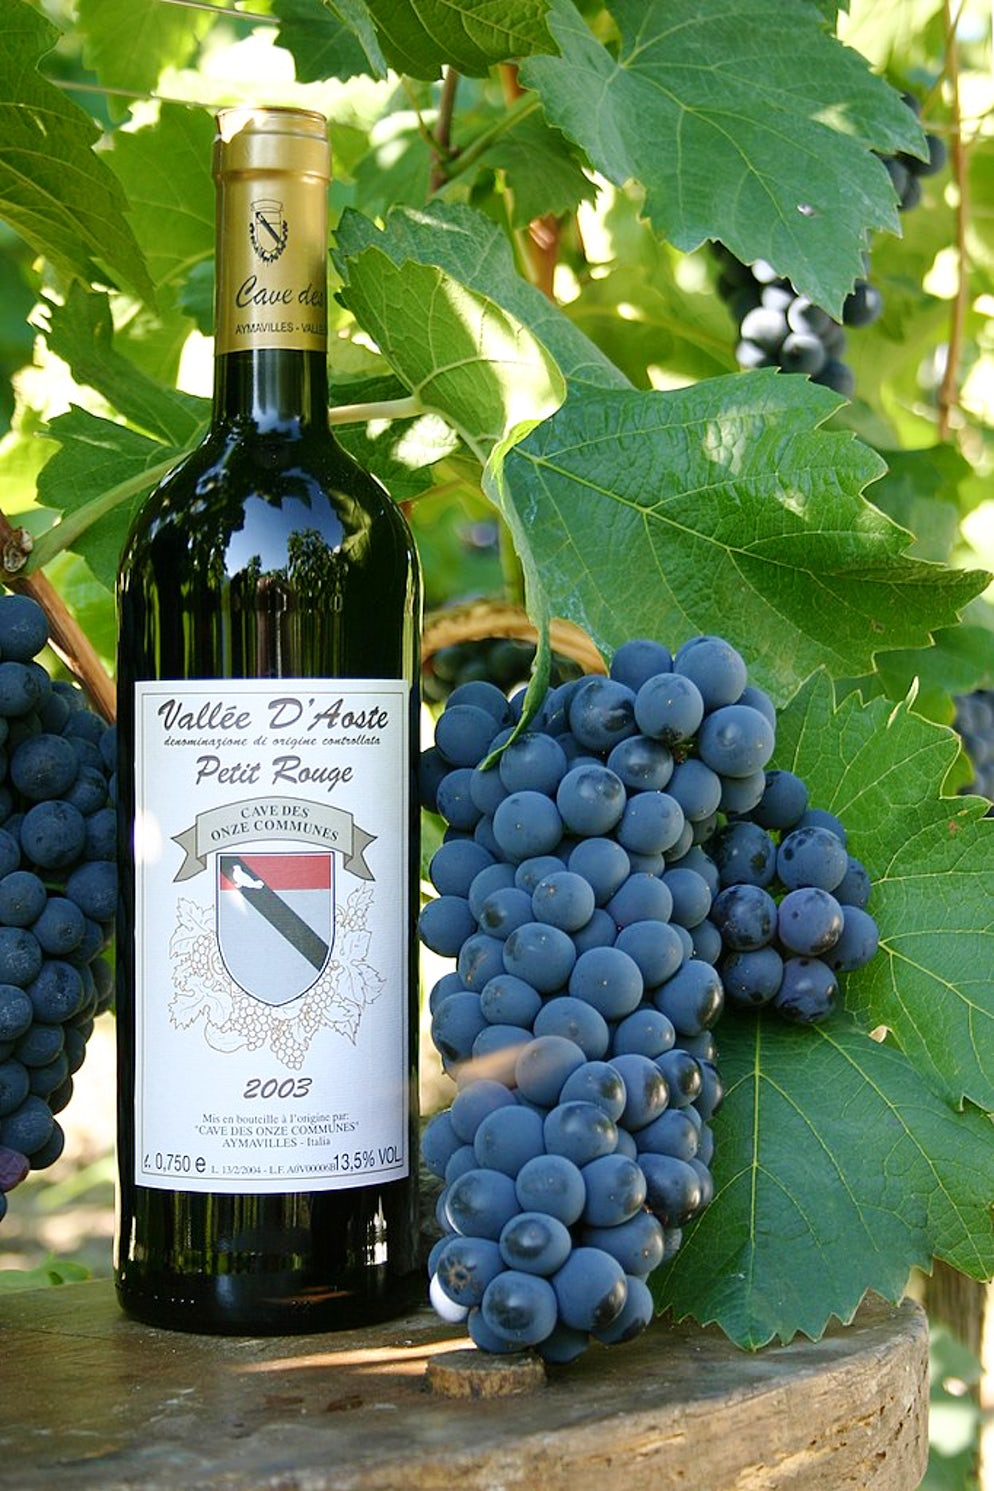 Wine from the valley. Picture © Credits to Wikipedia/Fabio Ingrosso